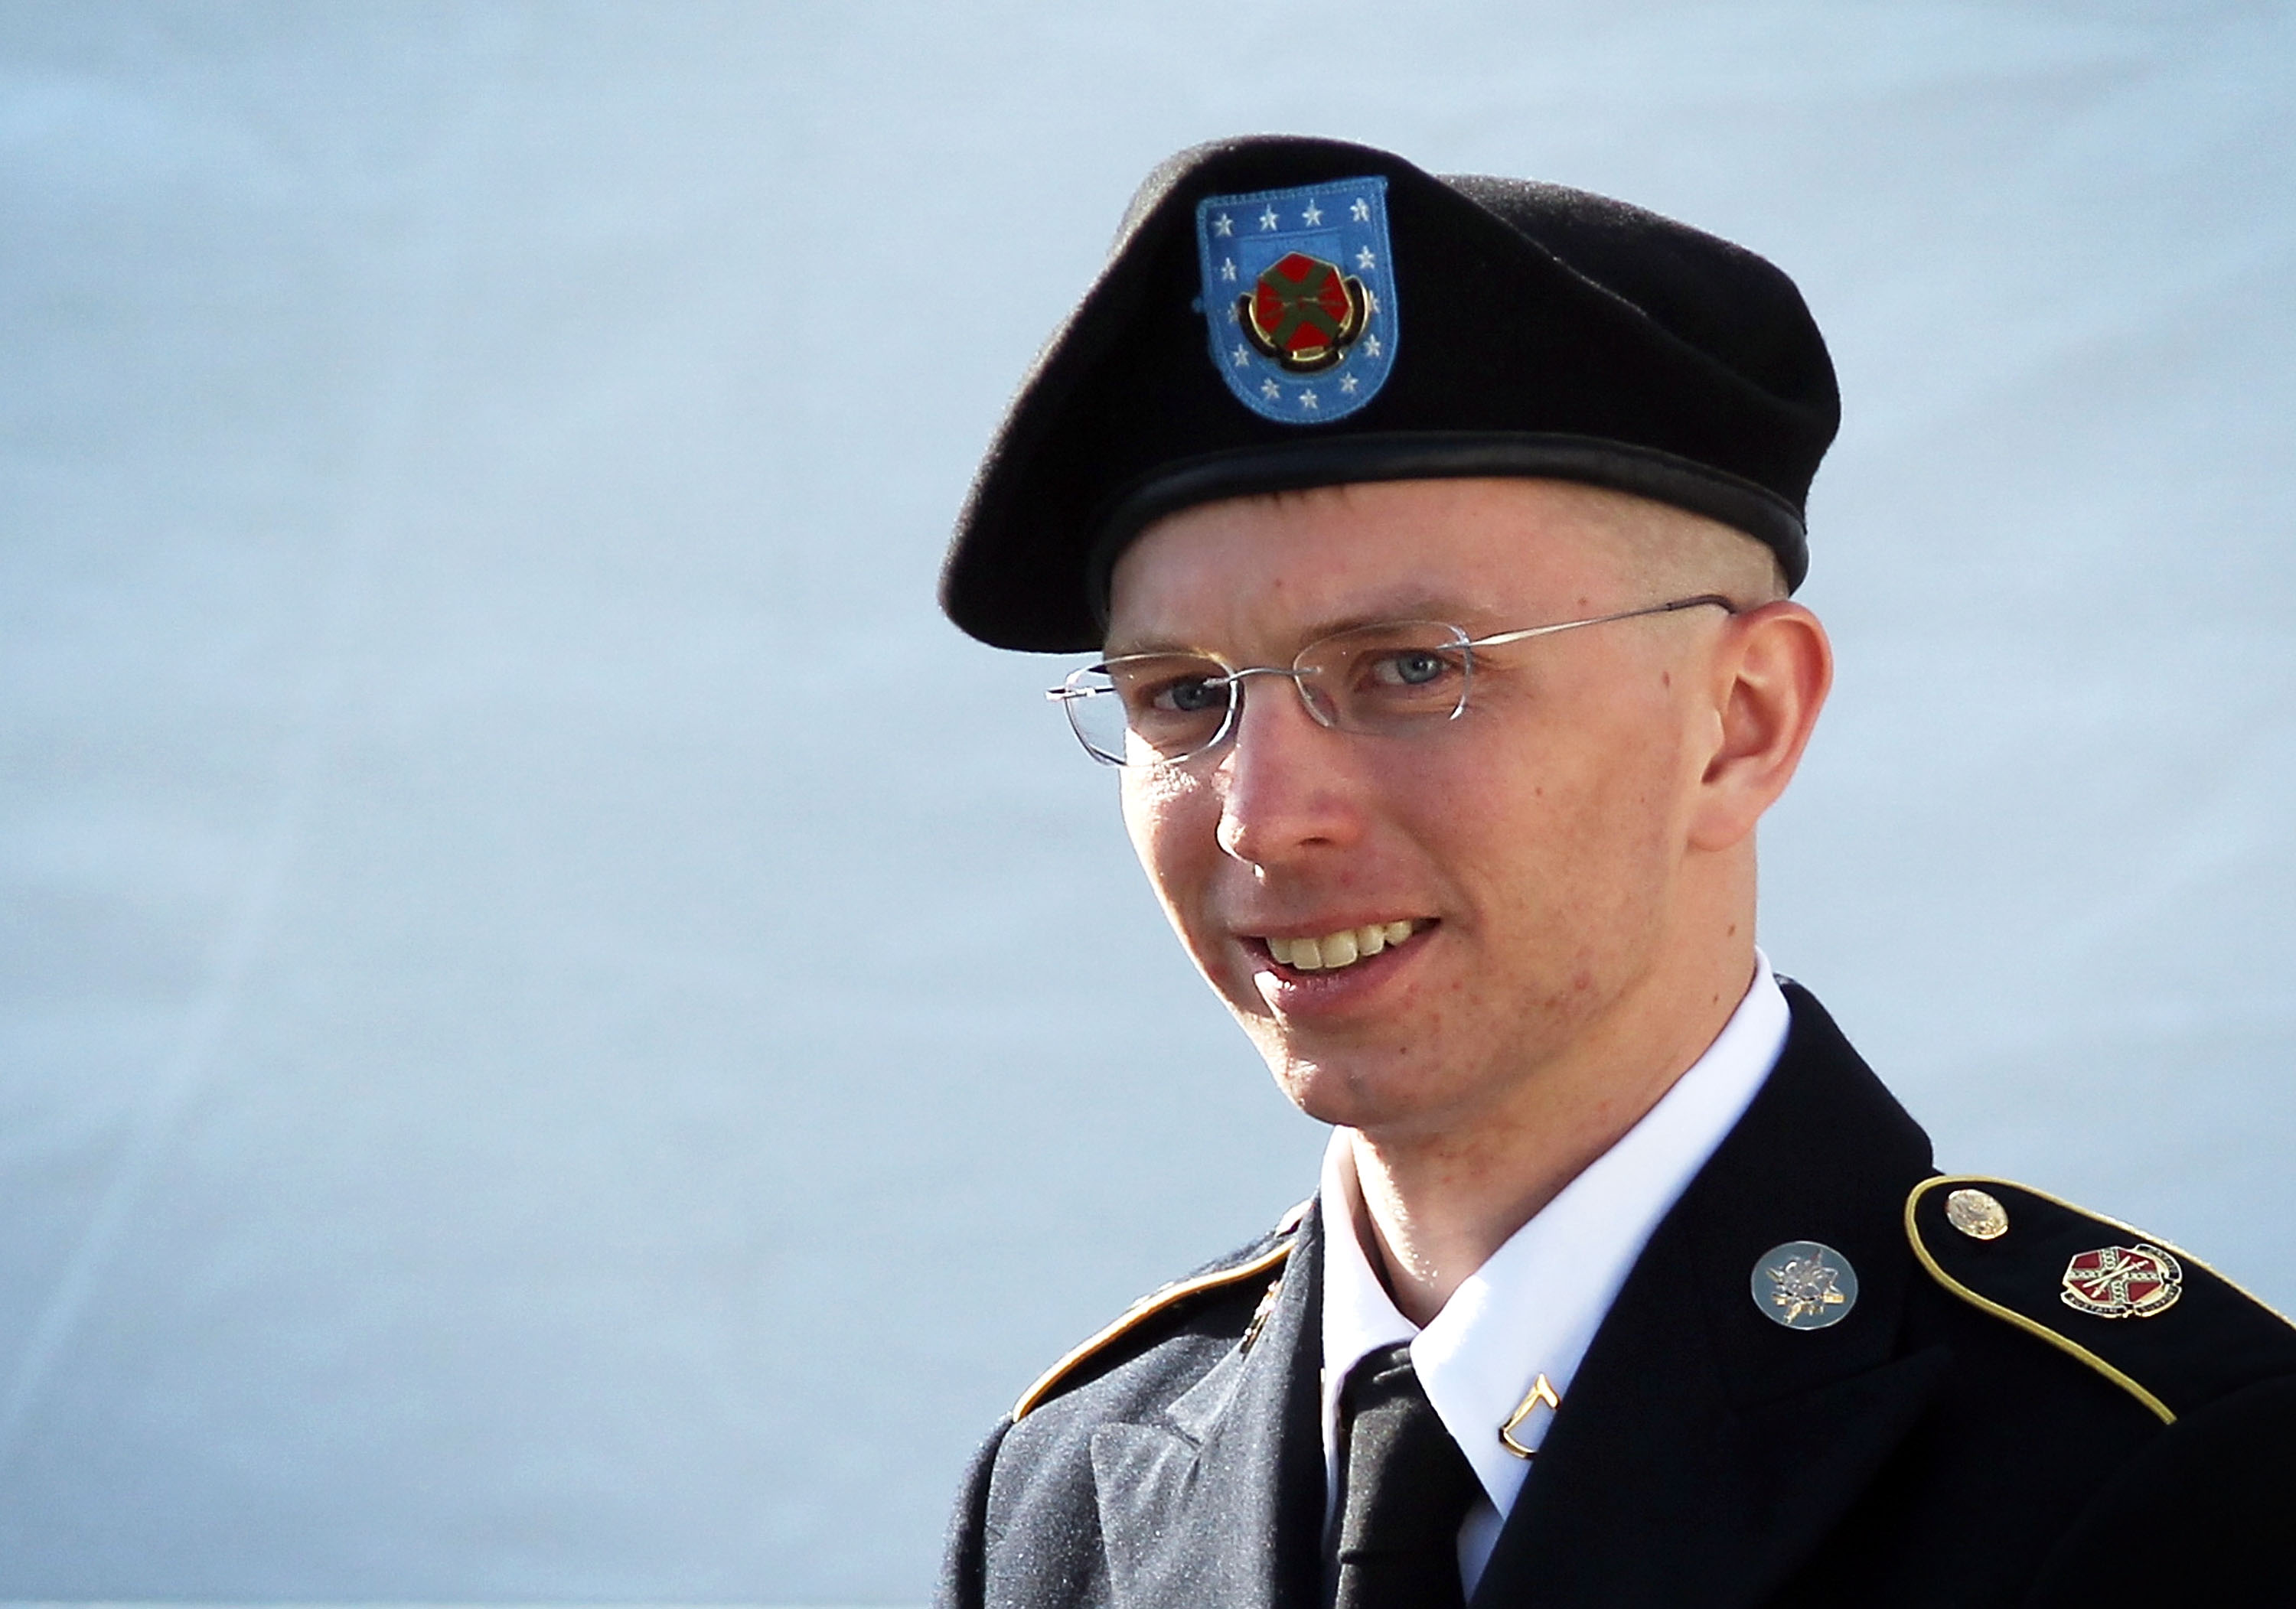 FORT MEADE, MD - JUNE 06: U.S. Army Private Bradley Manning is escorted as he leaves a military court at the end of the first of a three-day motion hearing June 6, 2012 in Fort Meade, Maryland. Manning, an Army intelligence analyst who has been accused of passing thousands of diplomatic cables and intelligence reports to the whistleblowing website WikiLeaks and facing 22 charges including aiding the enemy, returned to the court room to ask for dismissal of 10 of the charges. (Photo by Alex Wong/Getty Images)